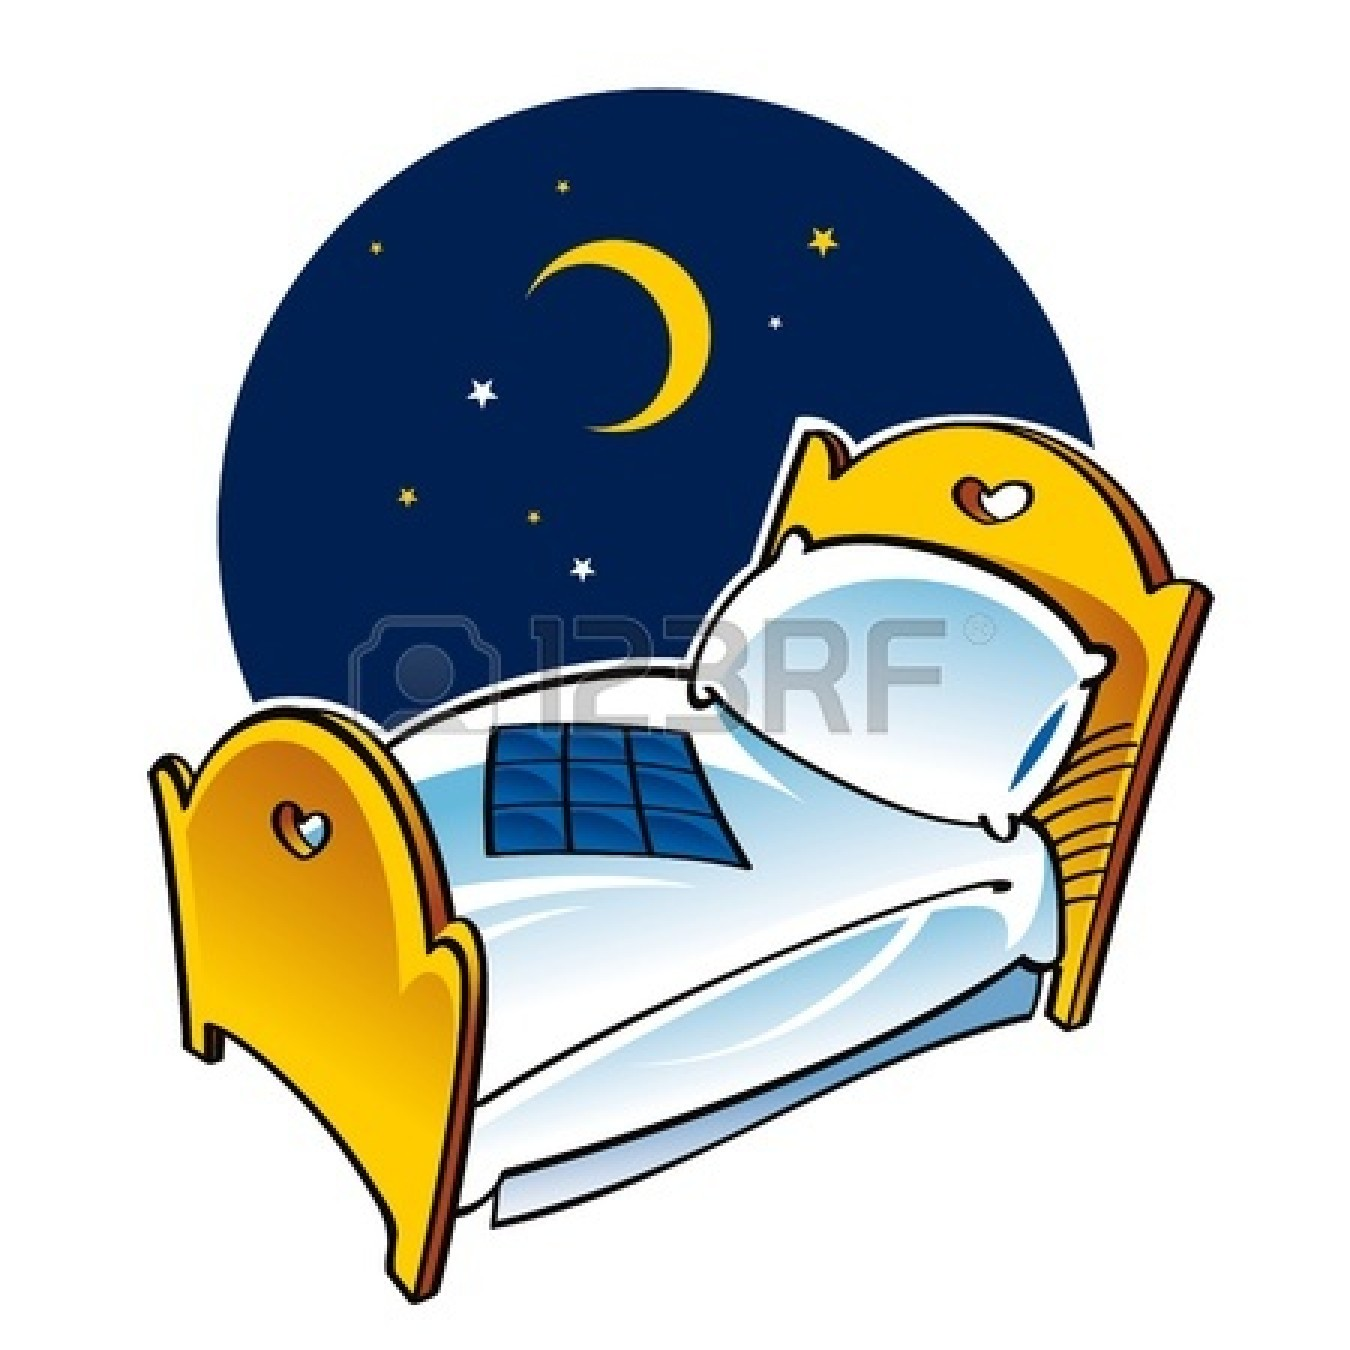 1350x1350 Blanket Sleeping Clipart, Explore Pictures